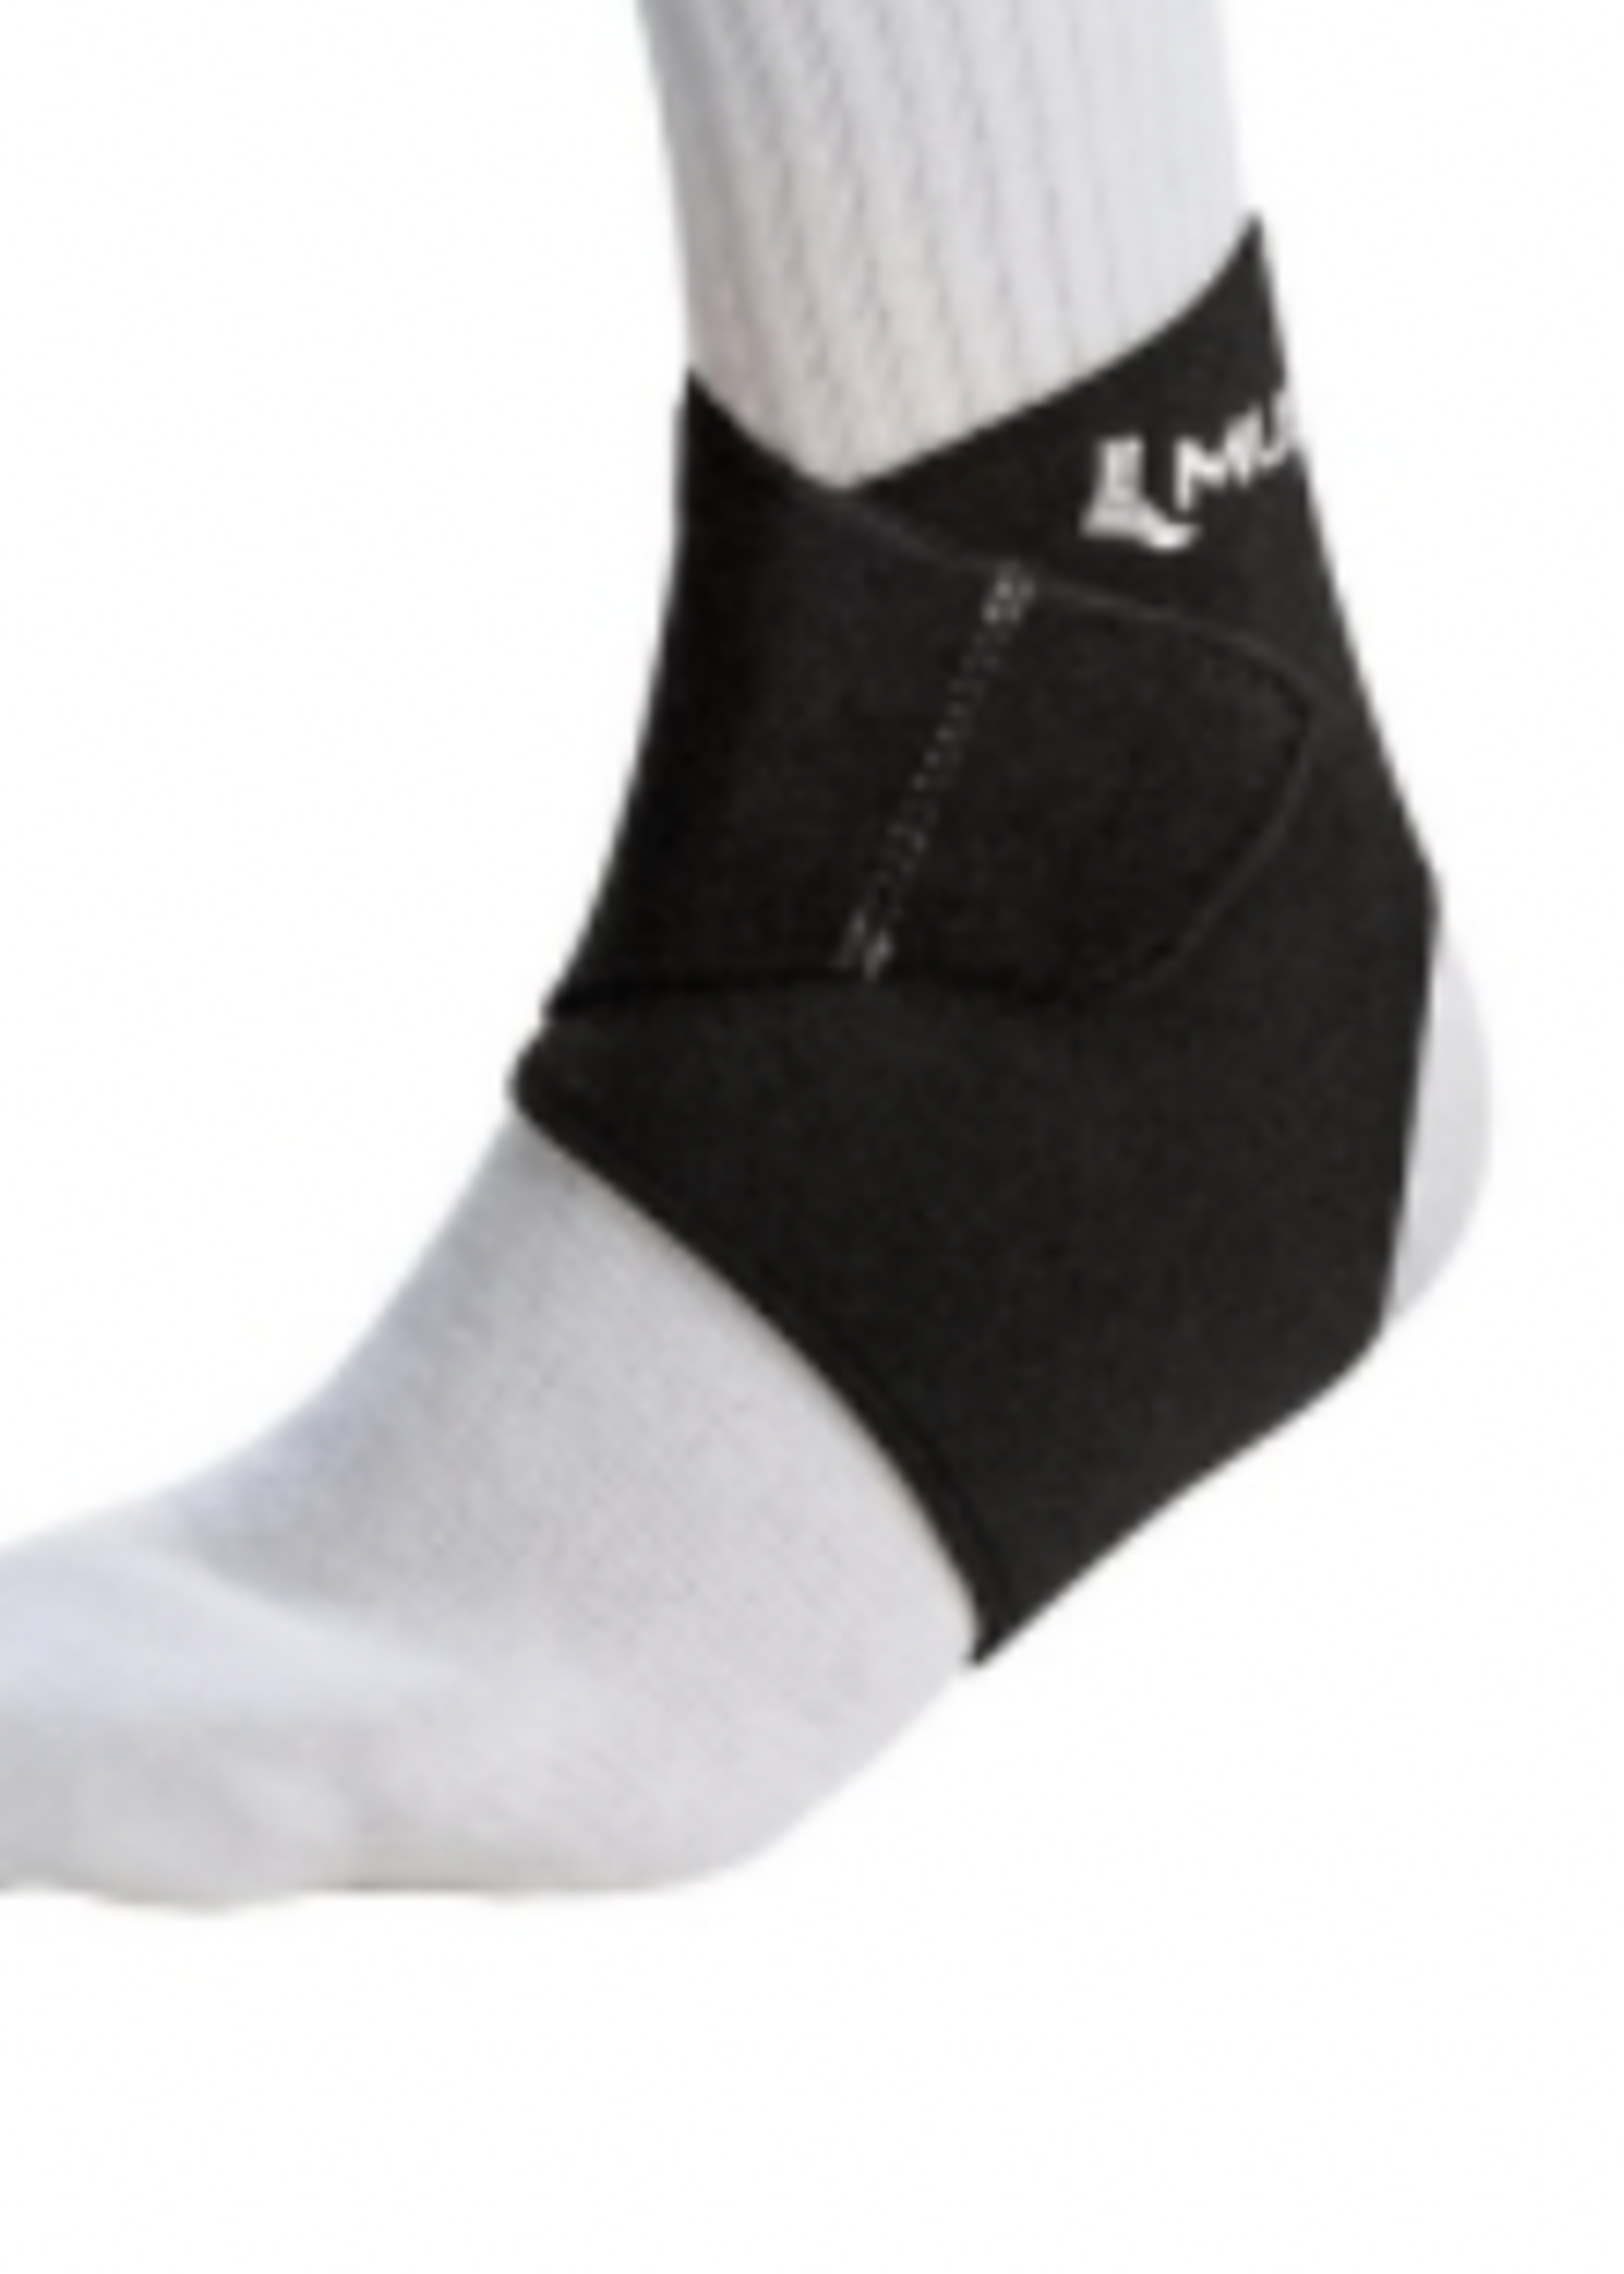 MUELLER MUELLER  Adjustable Wraparound Ankle Support